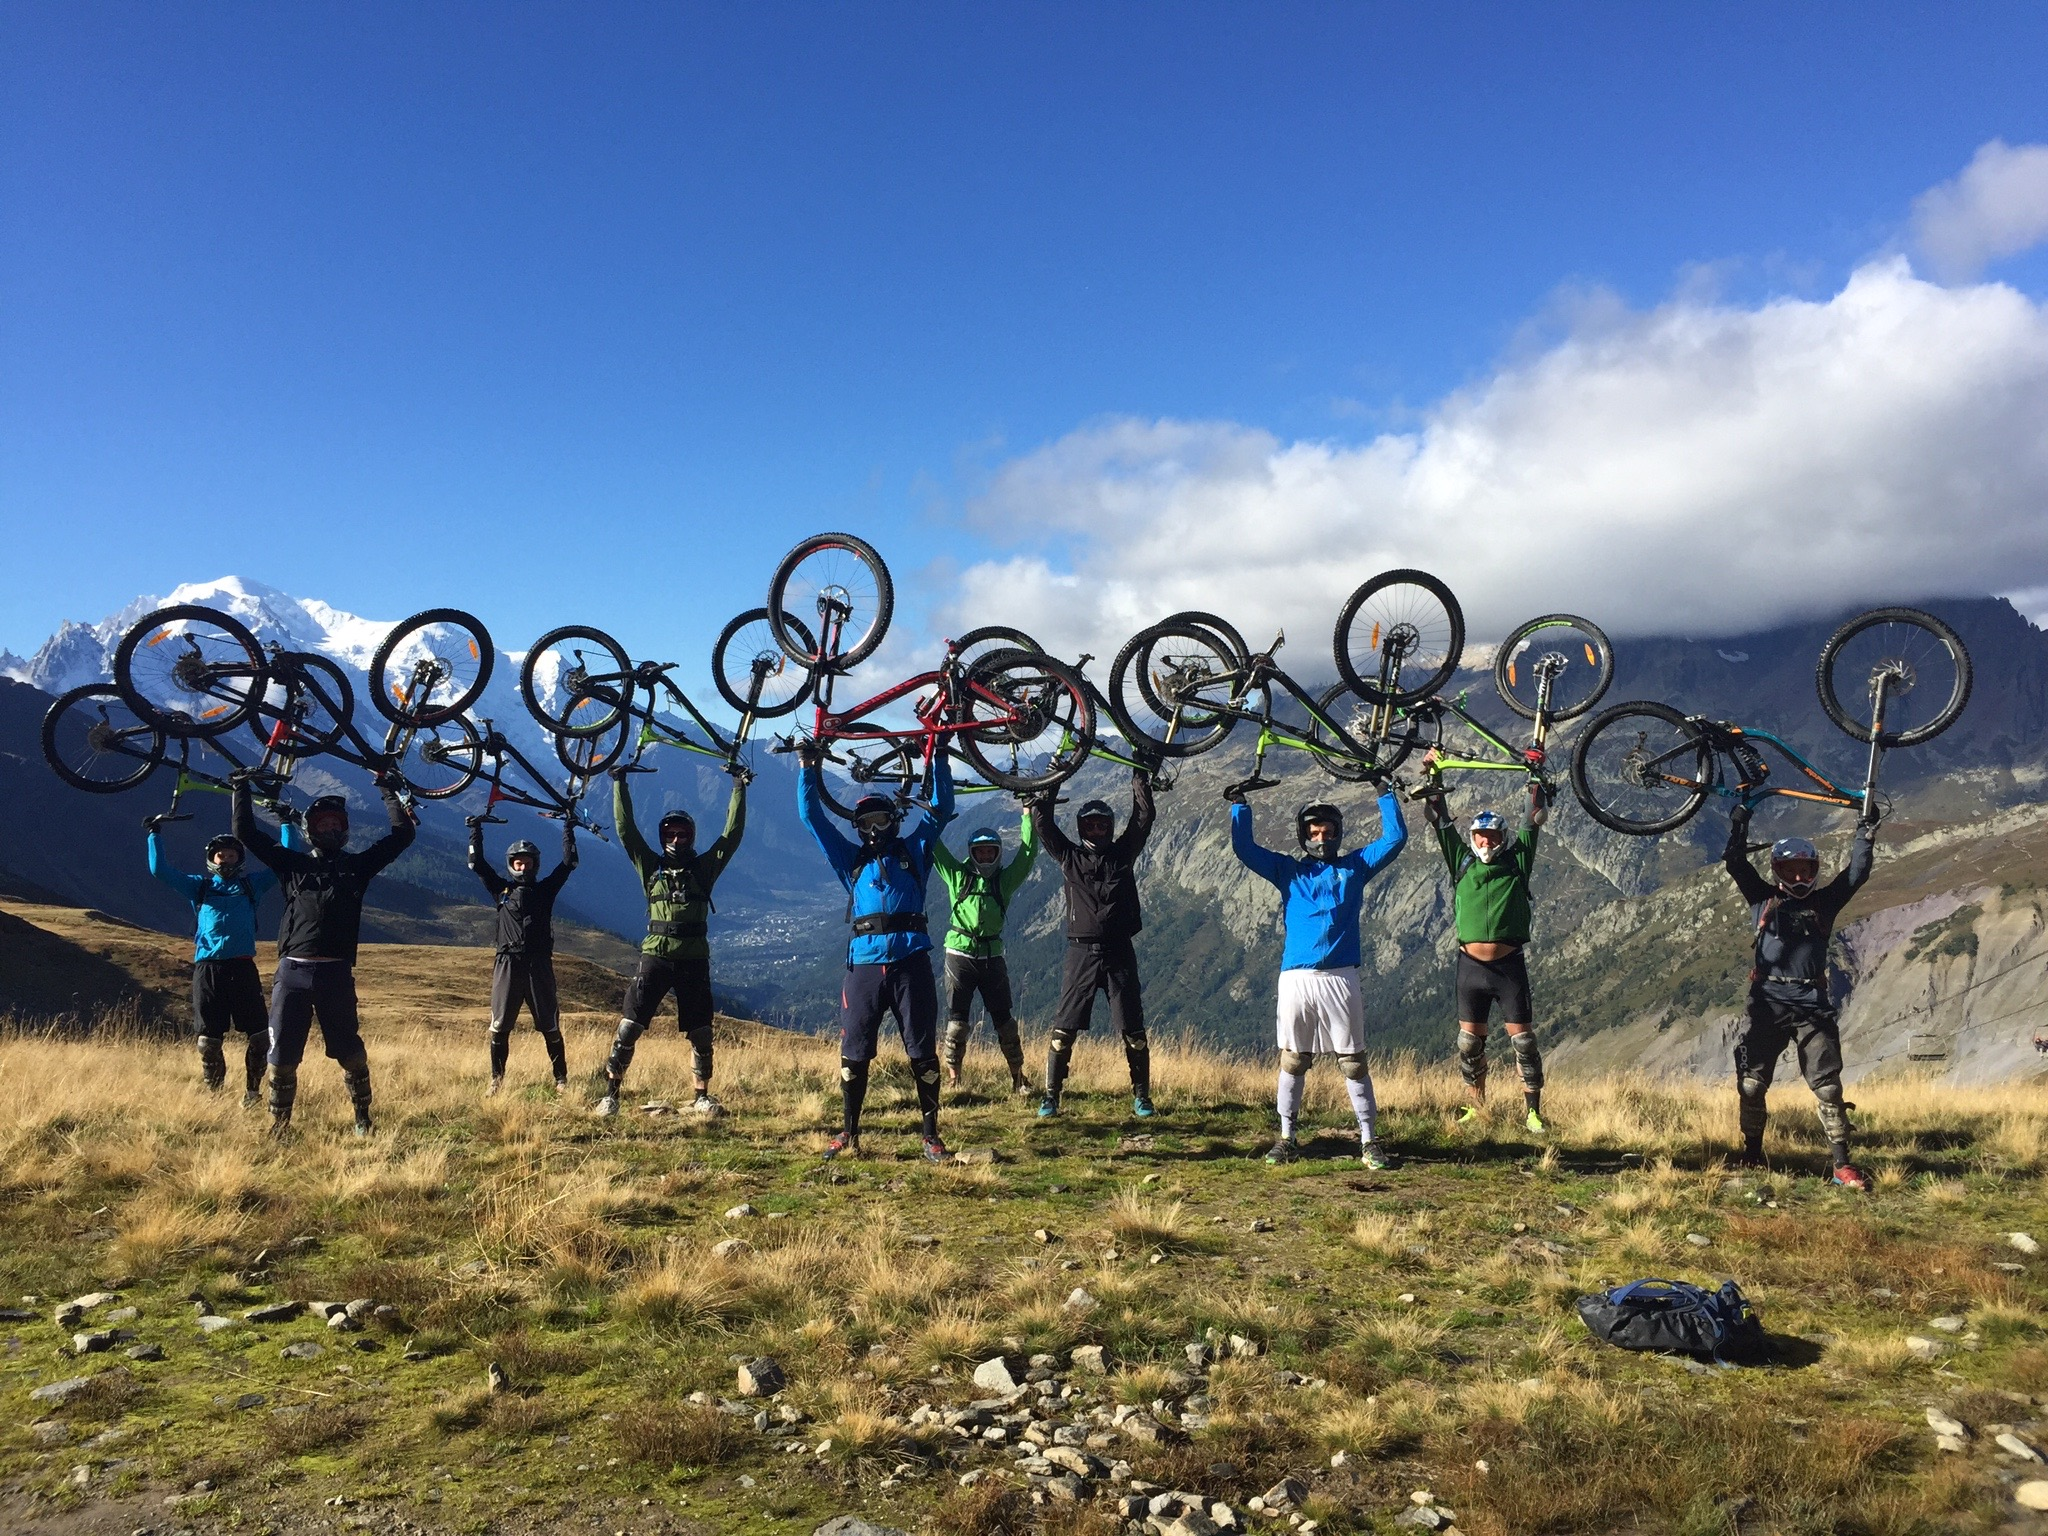 MTB Enduro Downhill in Le Tour Chamonix with the soft crew